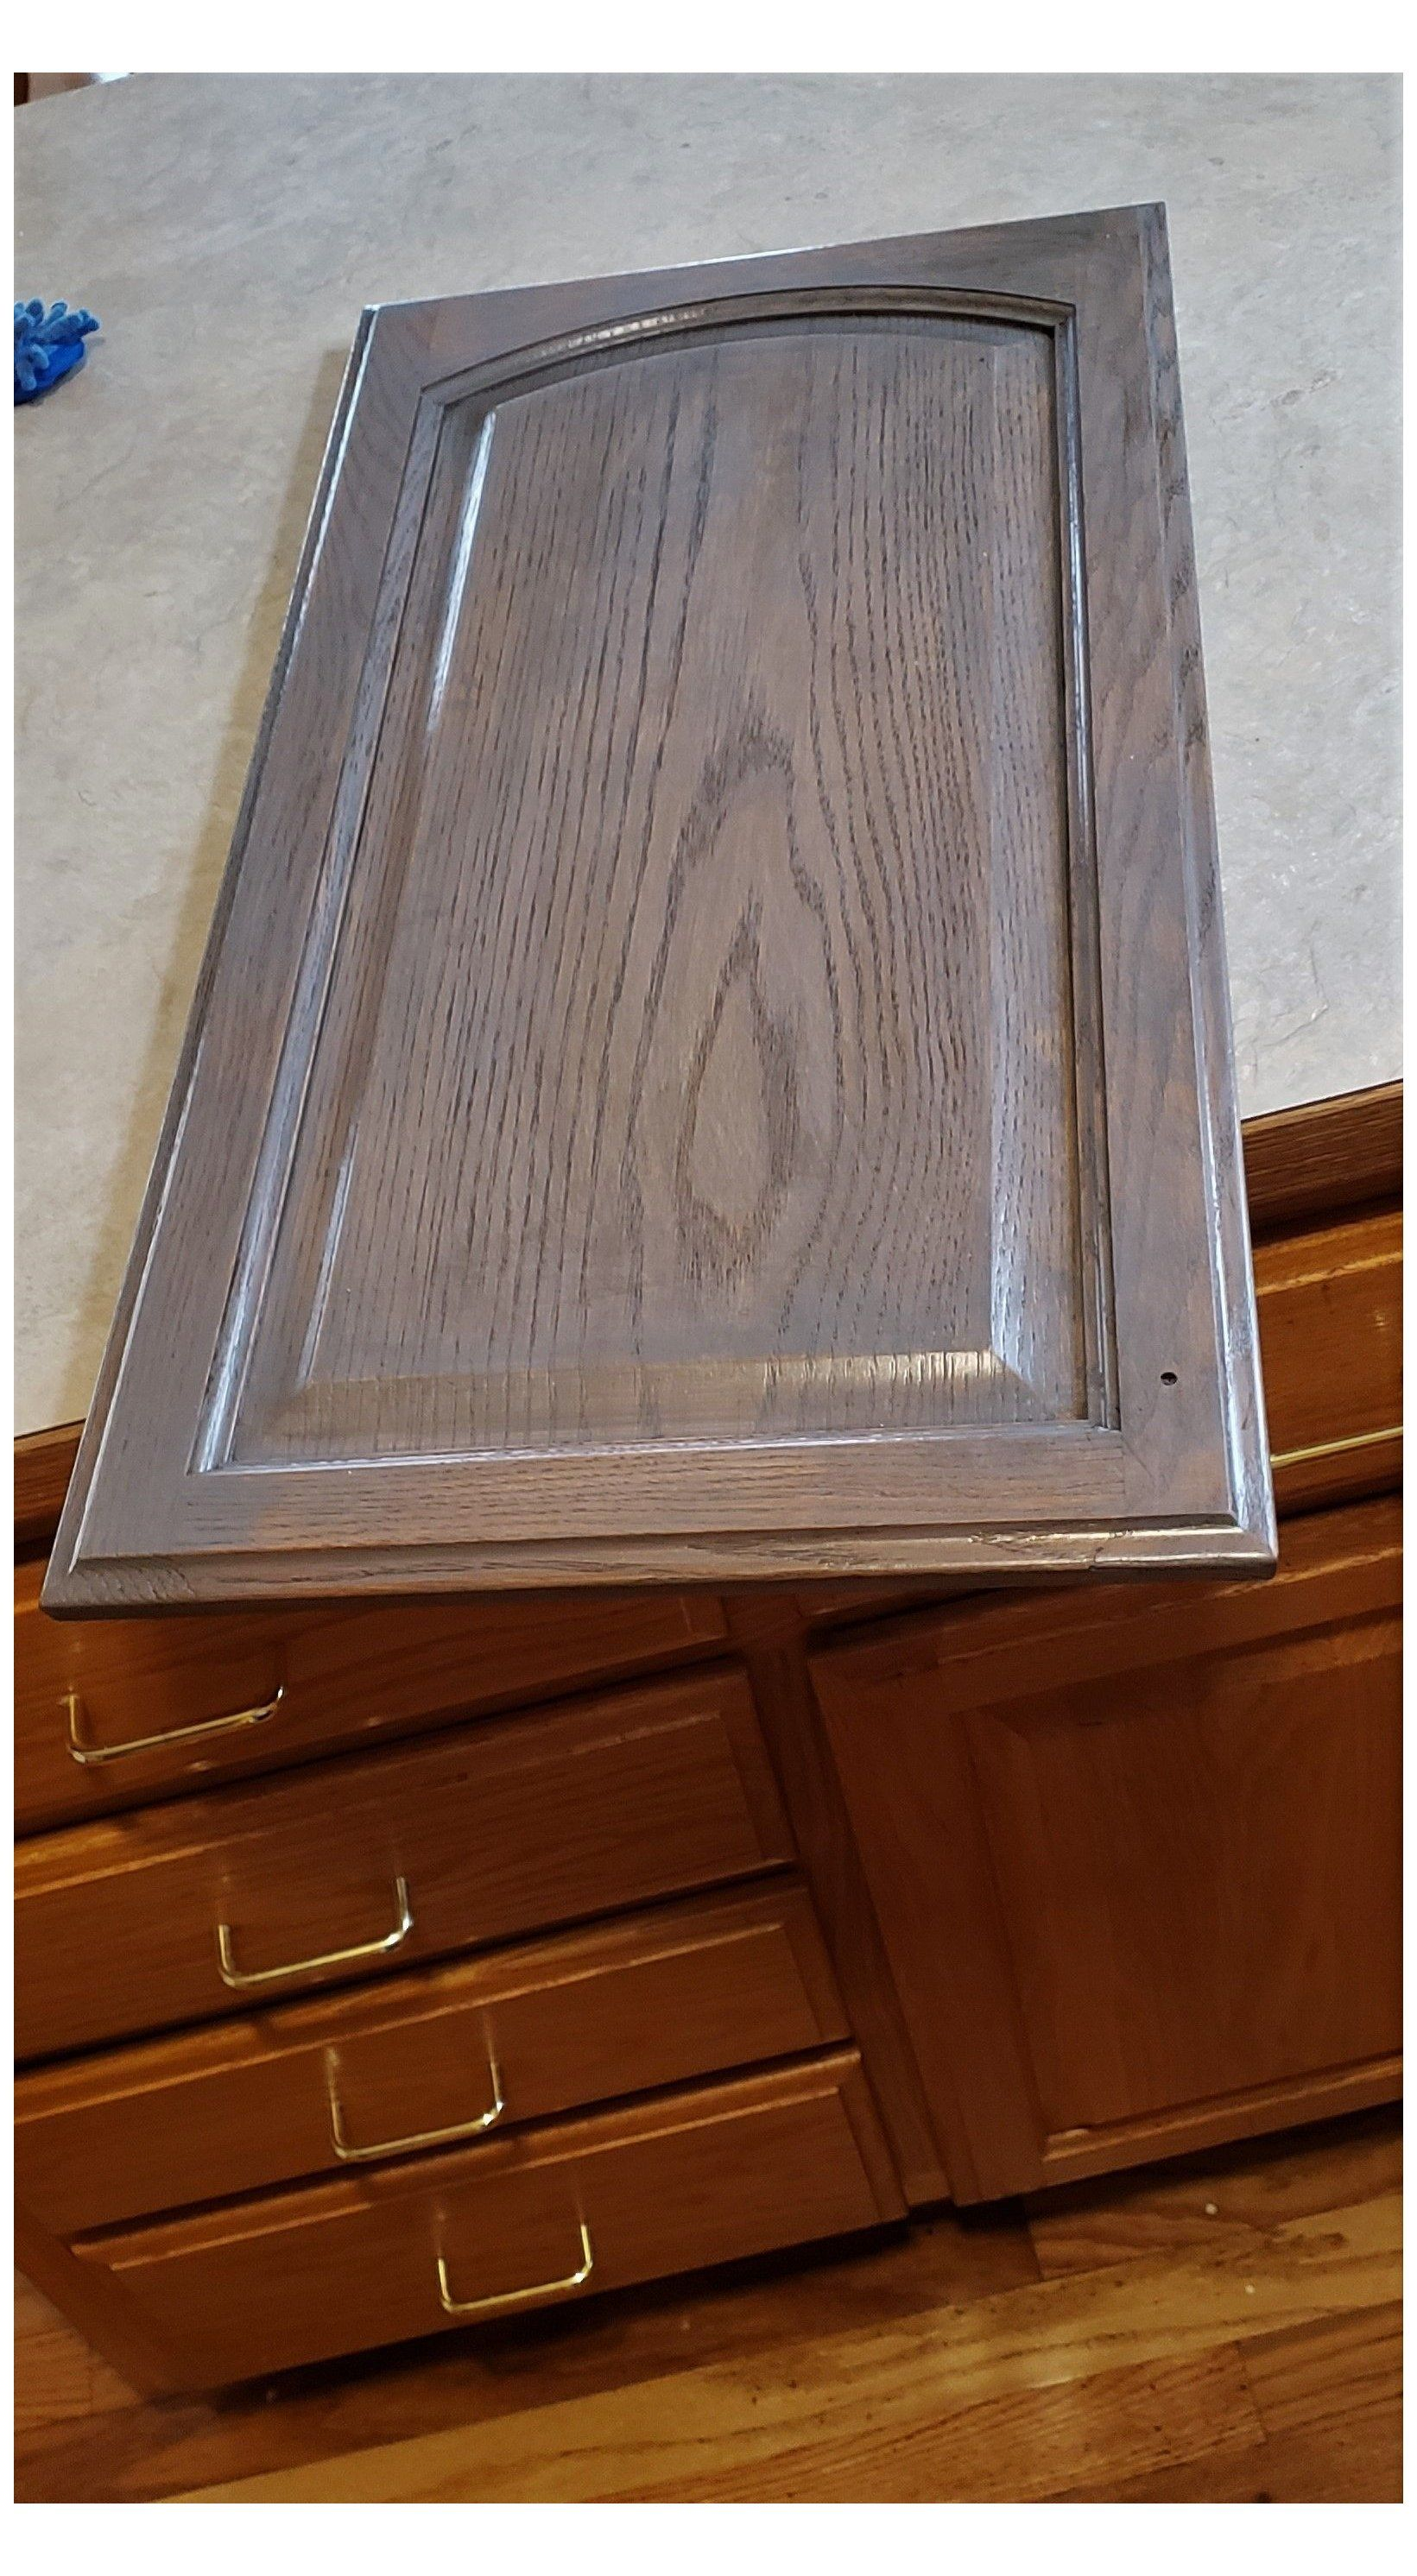 General Finishes Ash Gray Gel Stain On Golden Oak I Want To Change My Golden Oak Cabinets So In 2020 Staining Cabinets Staining Oak Cabinets Stained Kitchen Cabinets